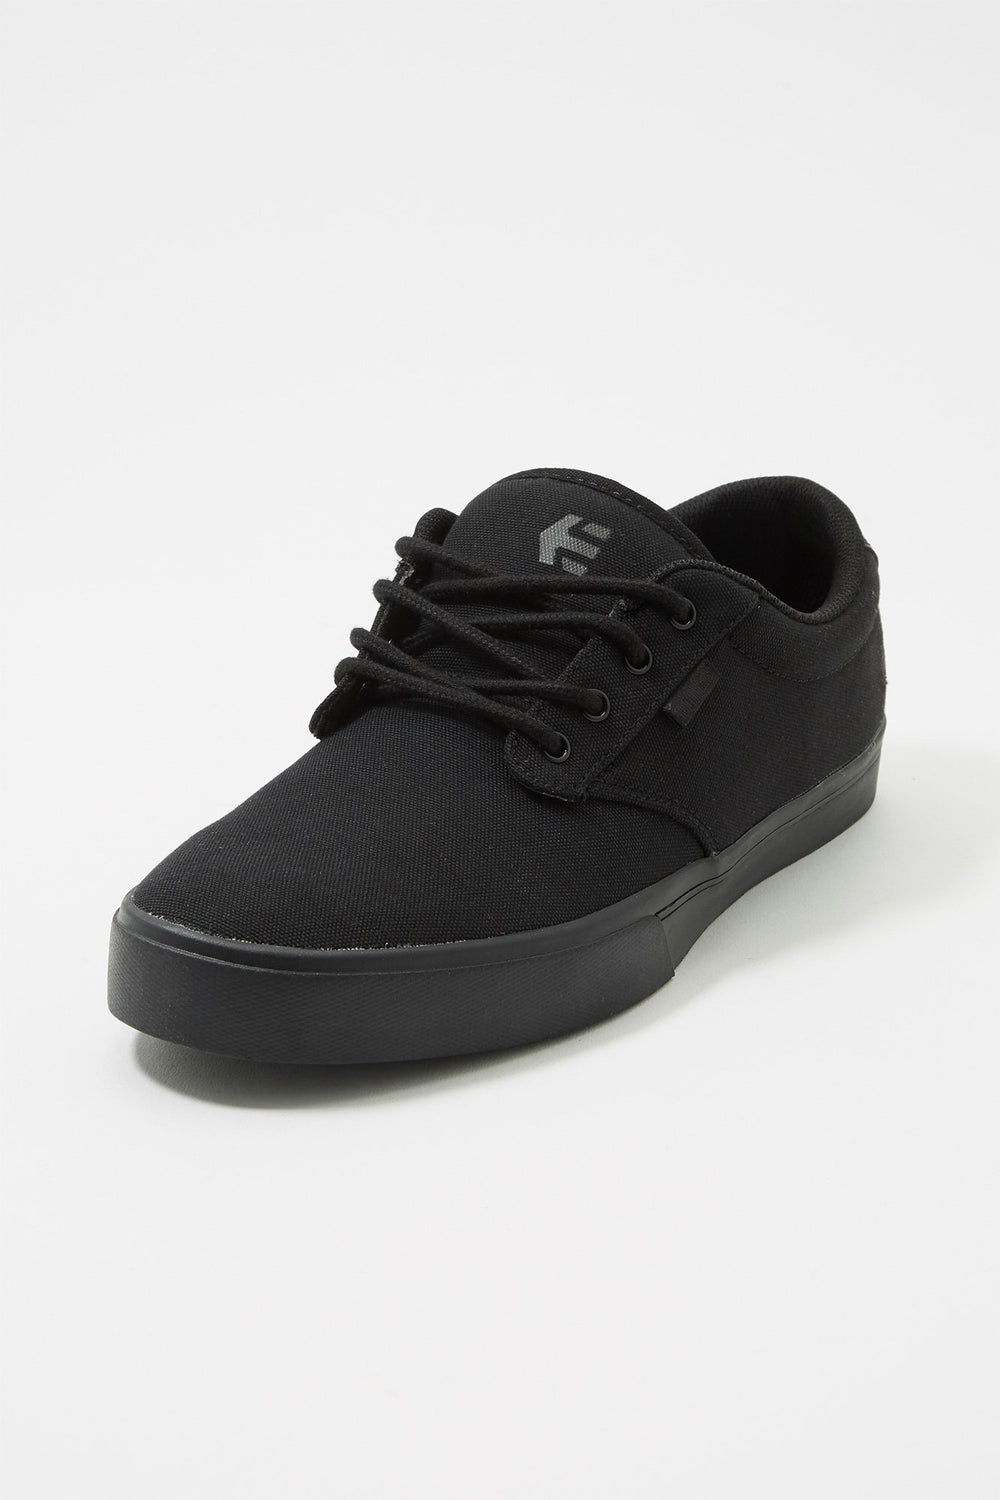 Etnies Mens Jameson 2 Eco Skate Shoes Black